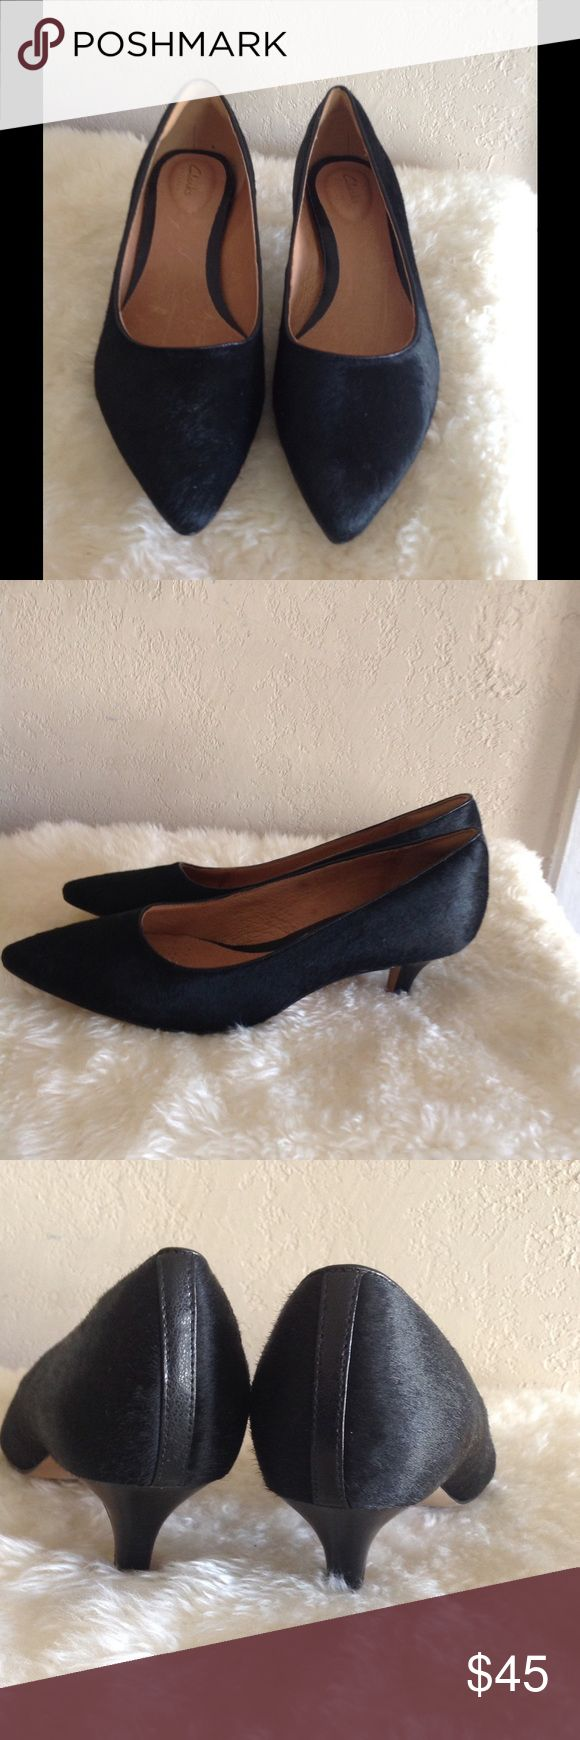 CYBER WEEK DEAL New CLARKS Leather Heels Never worn! Really beautiful shoes. About 2 inches high. Perfect for office or casual edgy look with skinnys. Upper man made leather. Clarks Shoes Heels